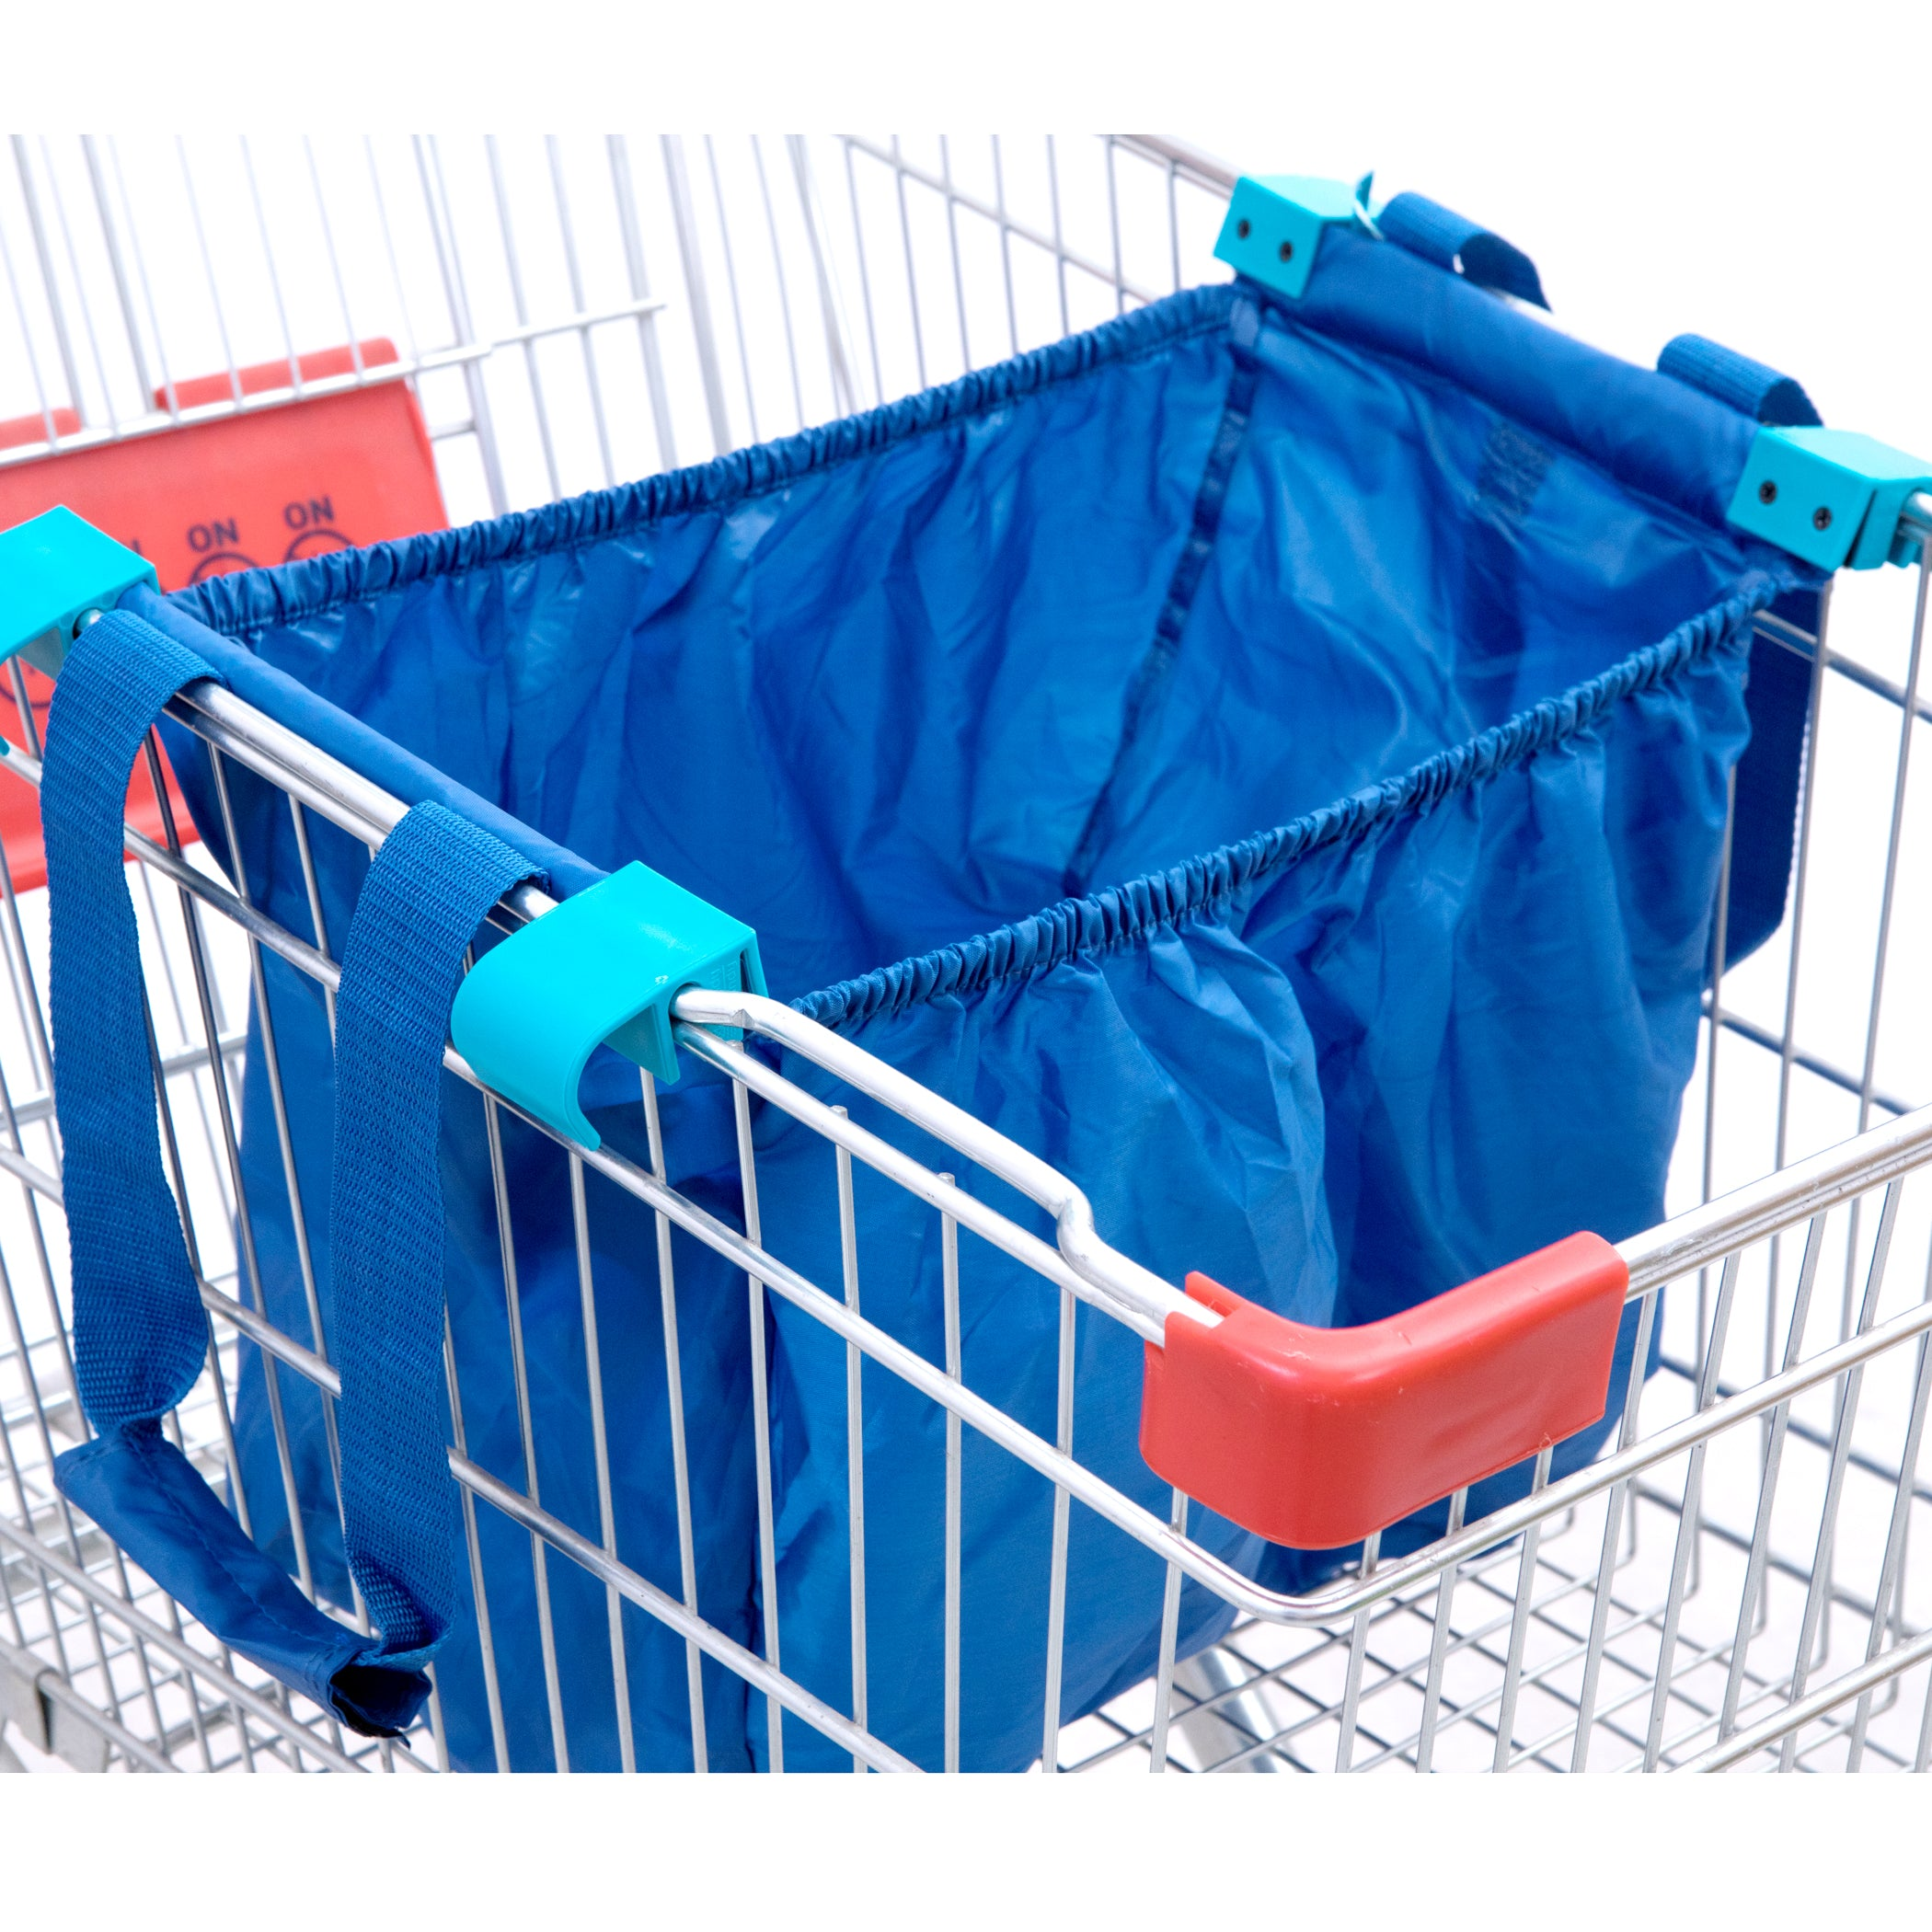 Handy Sandy Reusable Repeat Shopping Universal Cart Bags & Grocery Organizer (Blue) - handy | sandy